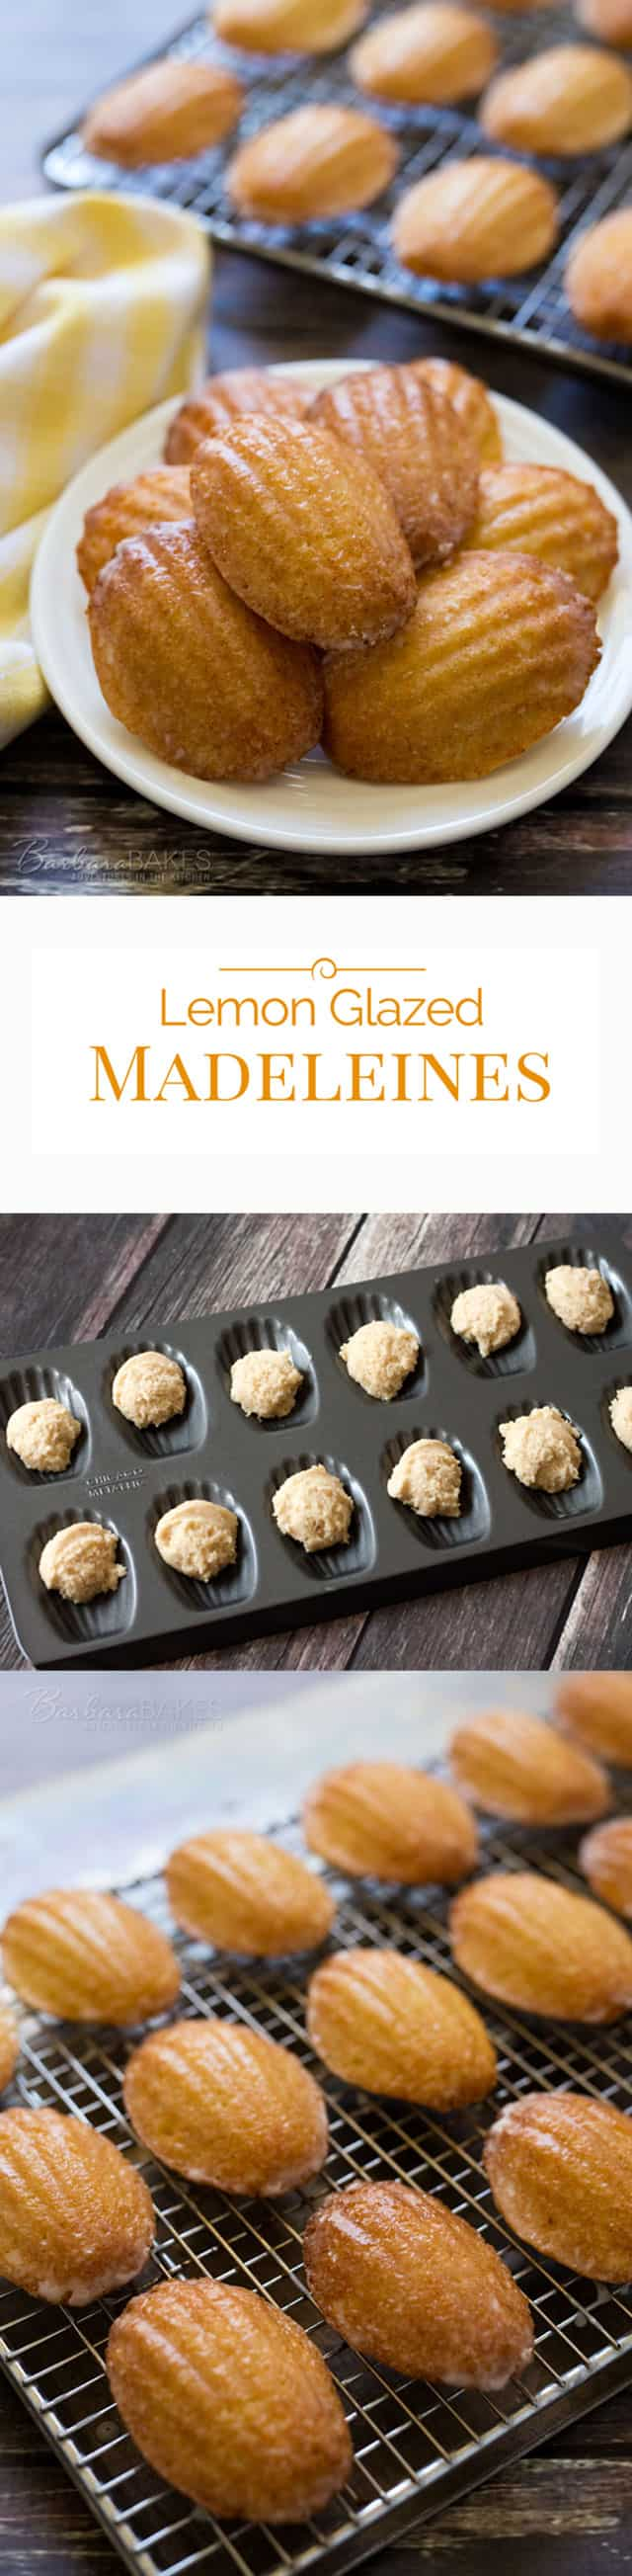 Tender little scalloped shaped lemon cakes coated with a tart lemon glaze. A beautiful French dessert that's easy to make.